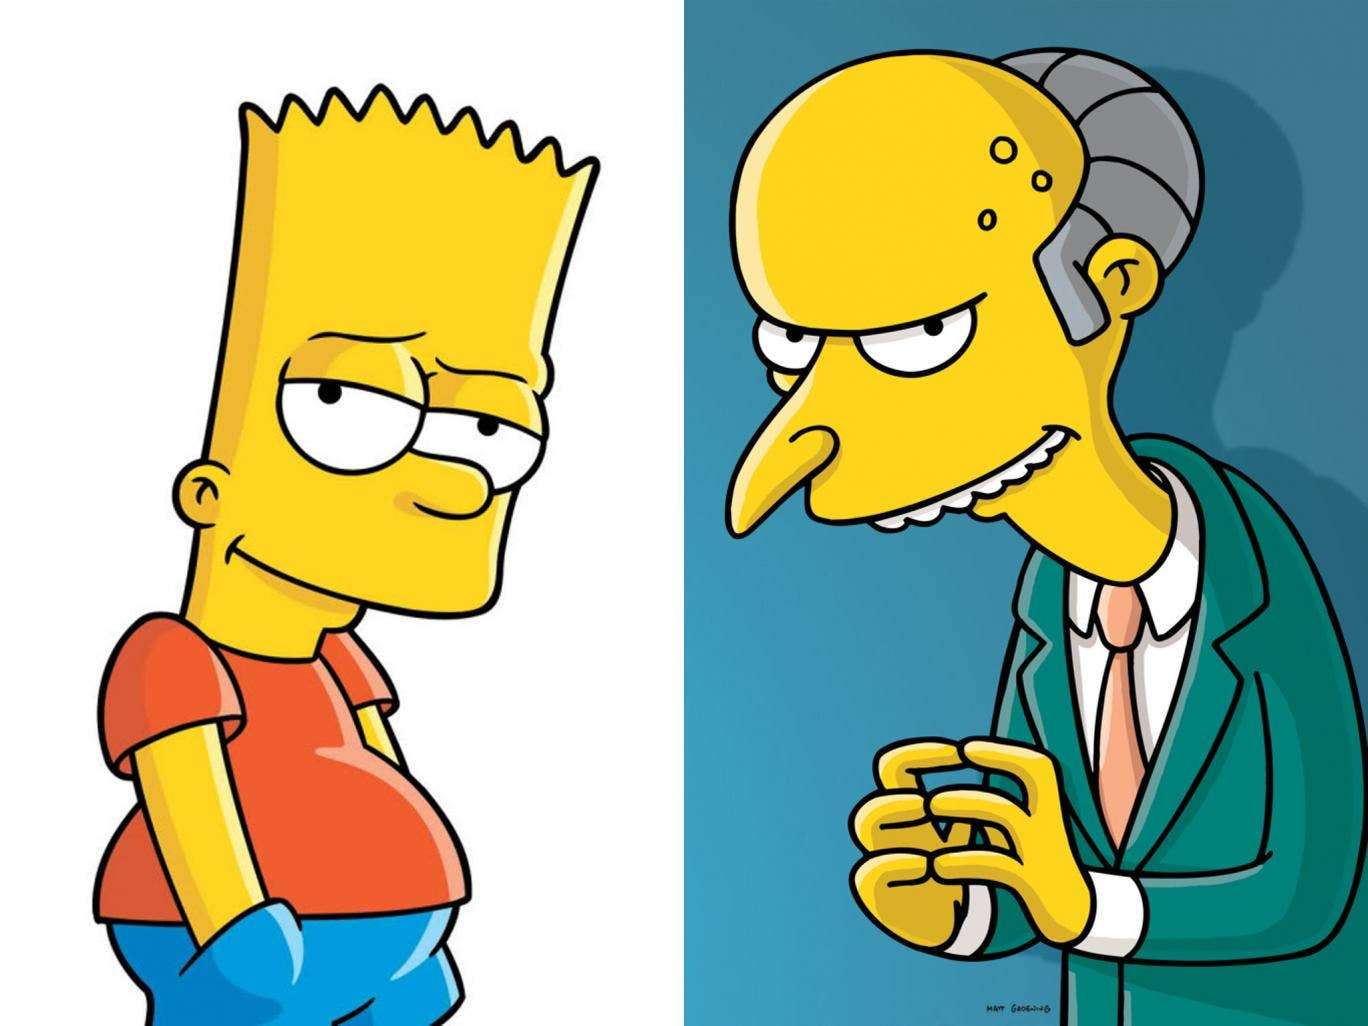 Not the defendant and judge, but their fictional namesakes: Bart Simpson and Mr Burns from The Simpsons